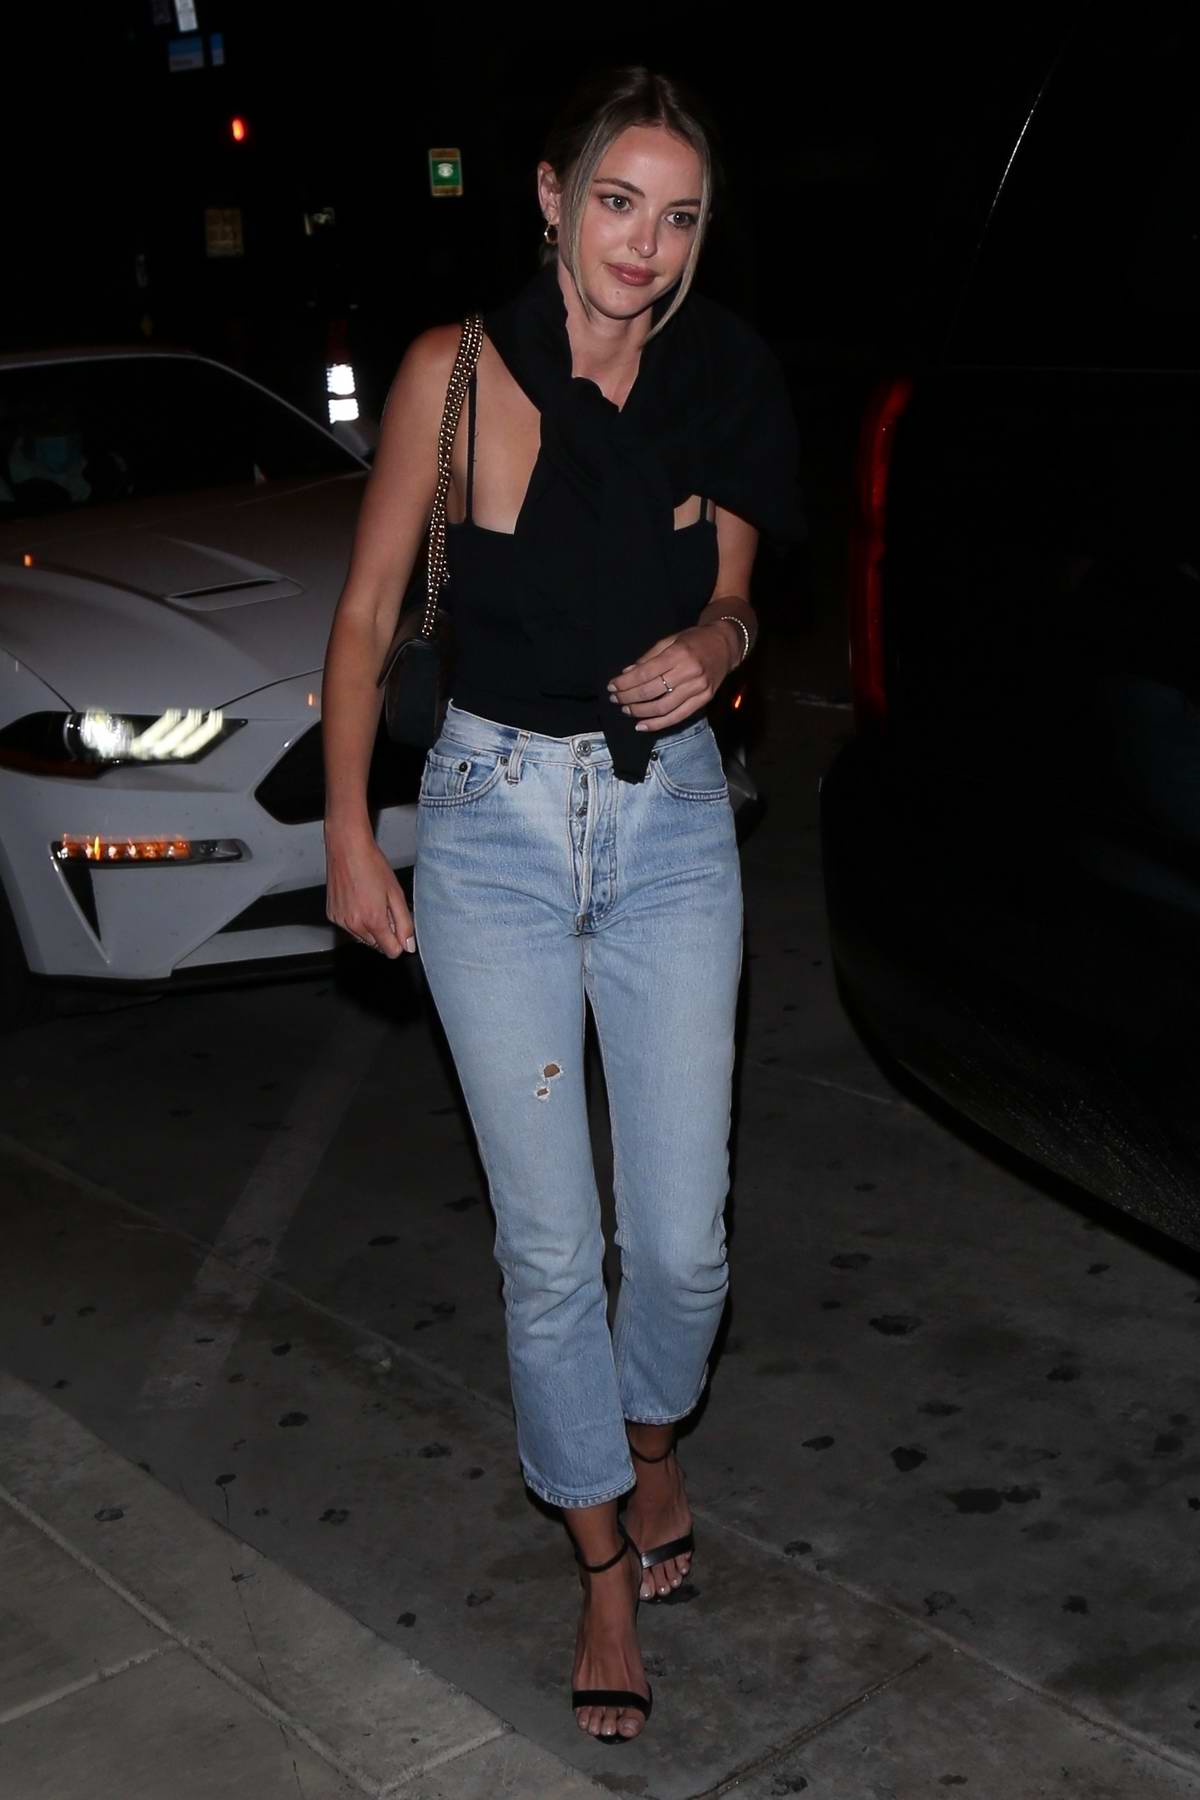 Kaitlynn Carter looks casually chic as she arrives at Catch restaurant in West Hollywood, California